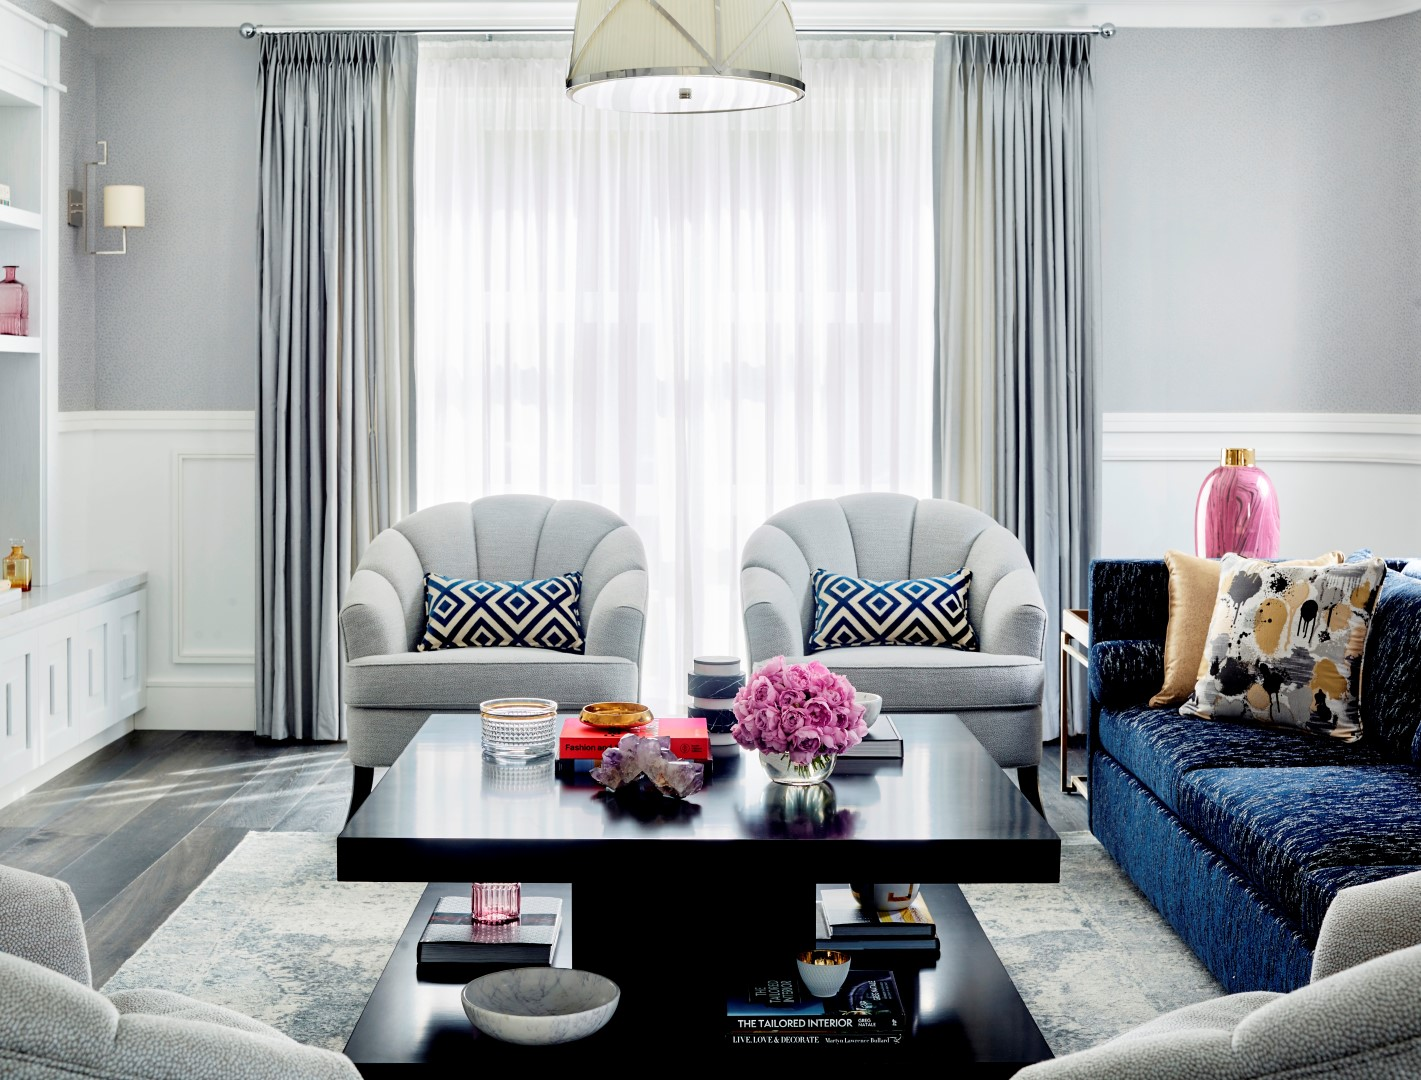 luxury forever home design in sydney s plush rose bay area by greg